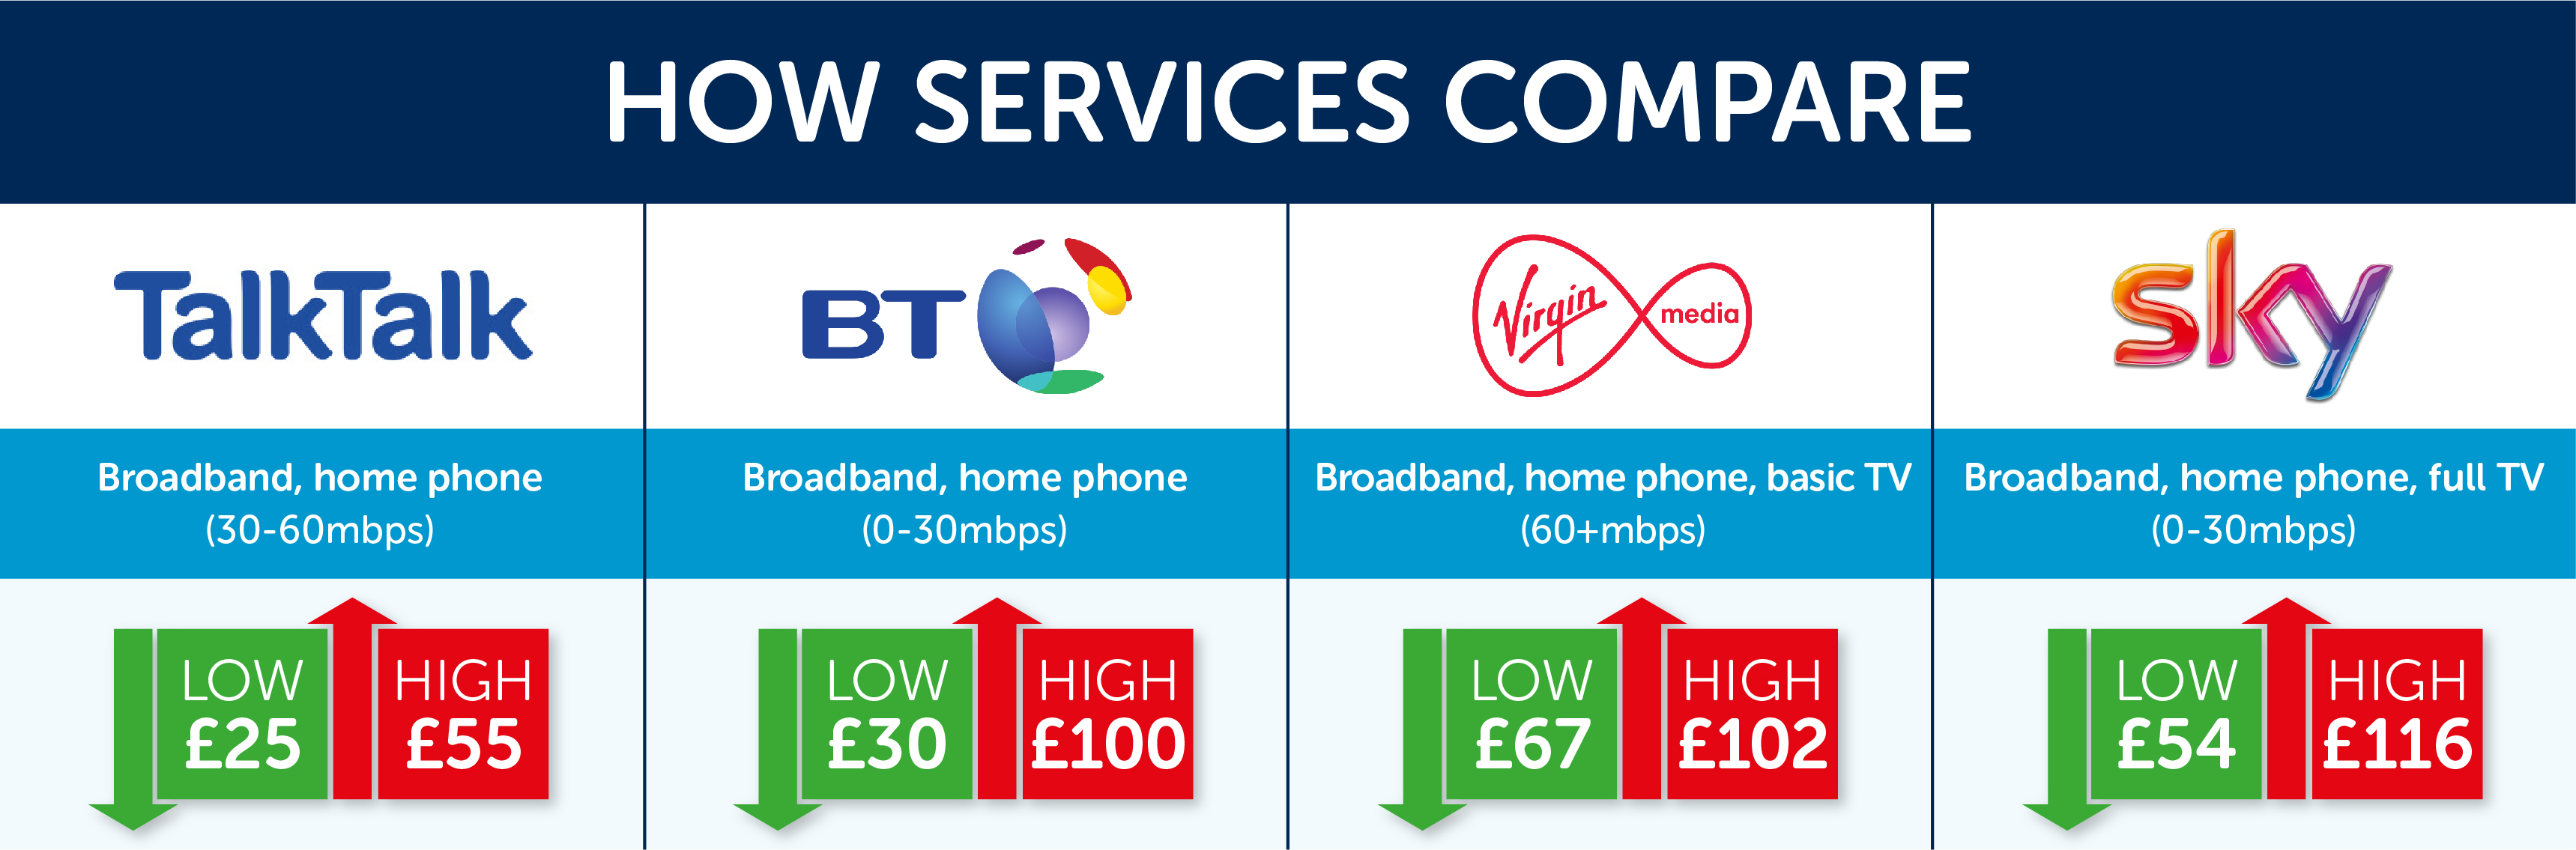 Table demonstrating broadband, and home phone price comparisons and disparities for TalkTalk and BT. Also showing disparities for broadband, home phone, and TV packages with Virgin Media and Sky.